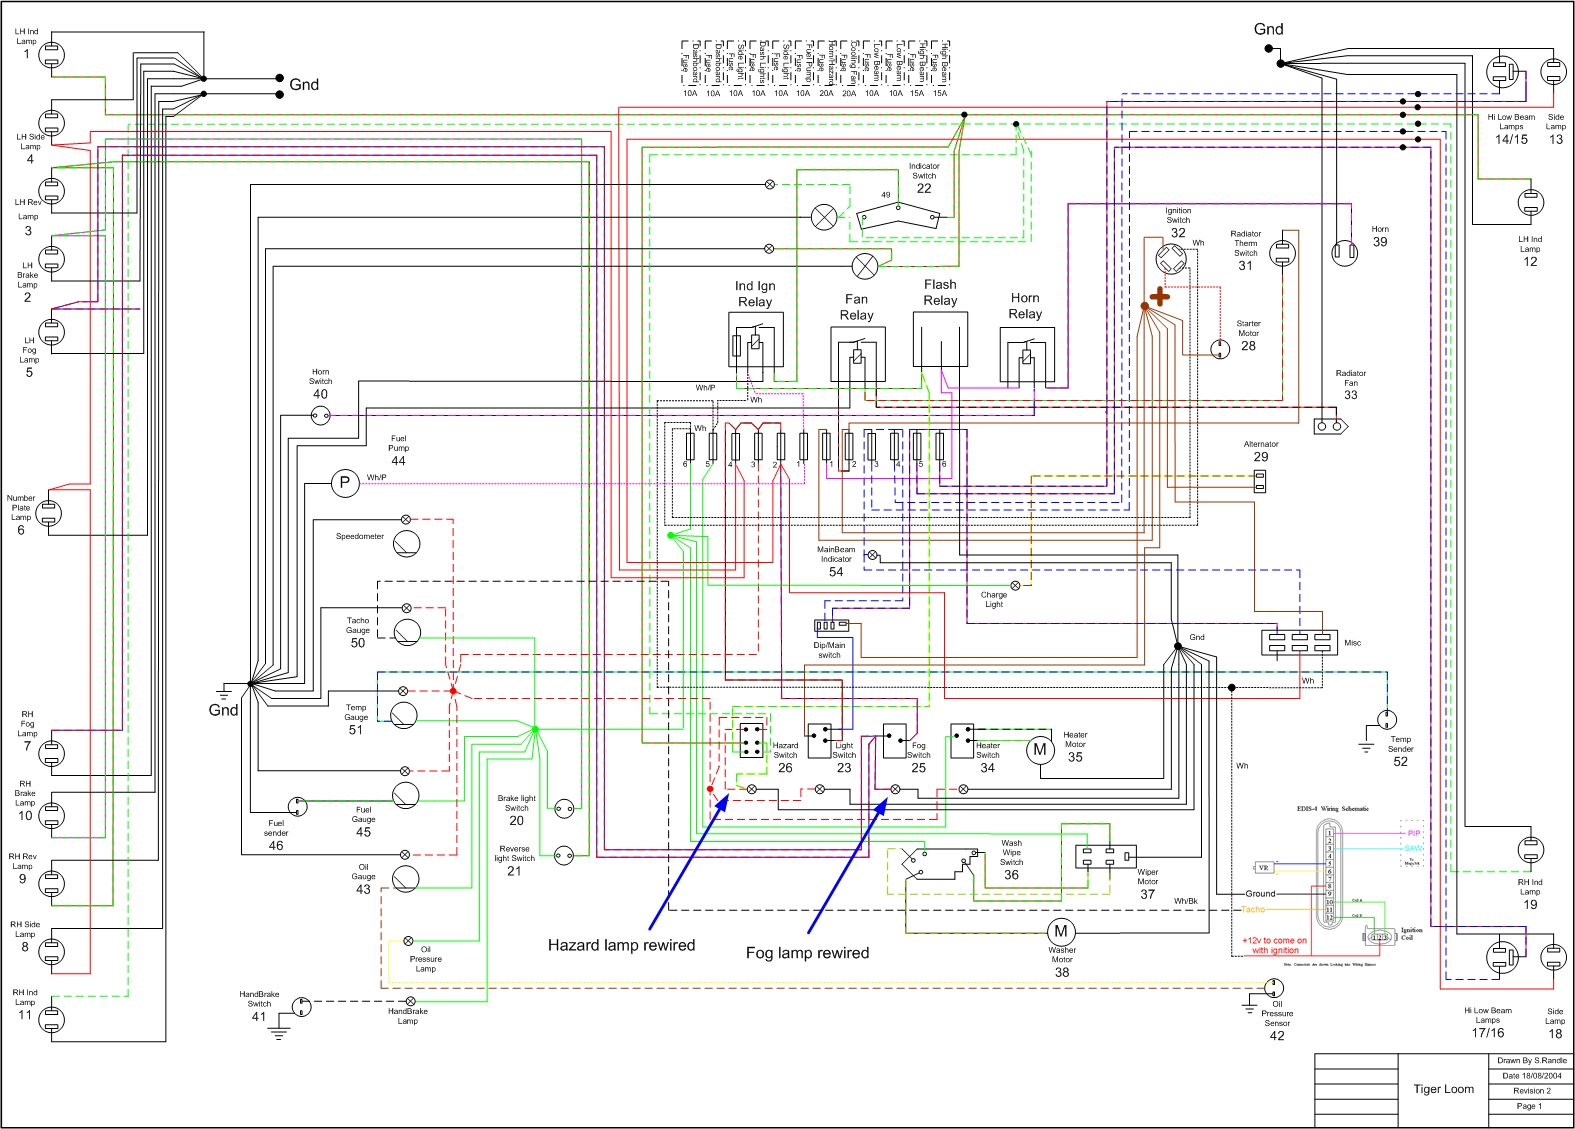 S6 Wiring Diagram welcome to the tiger owners club r6 wiring diagram at gsmx.co